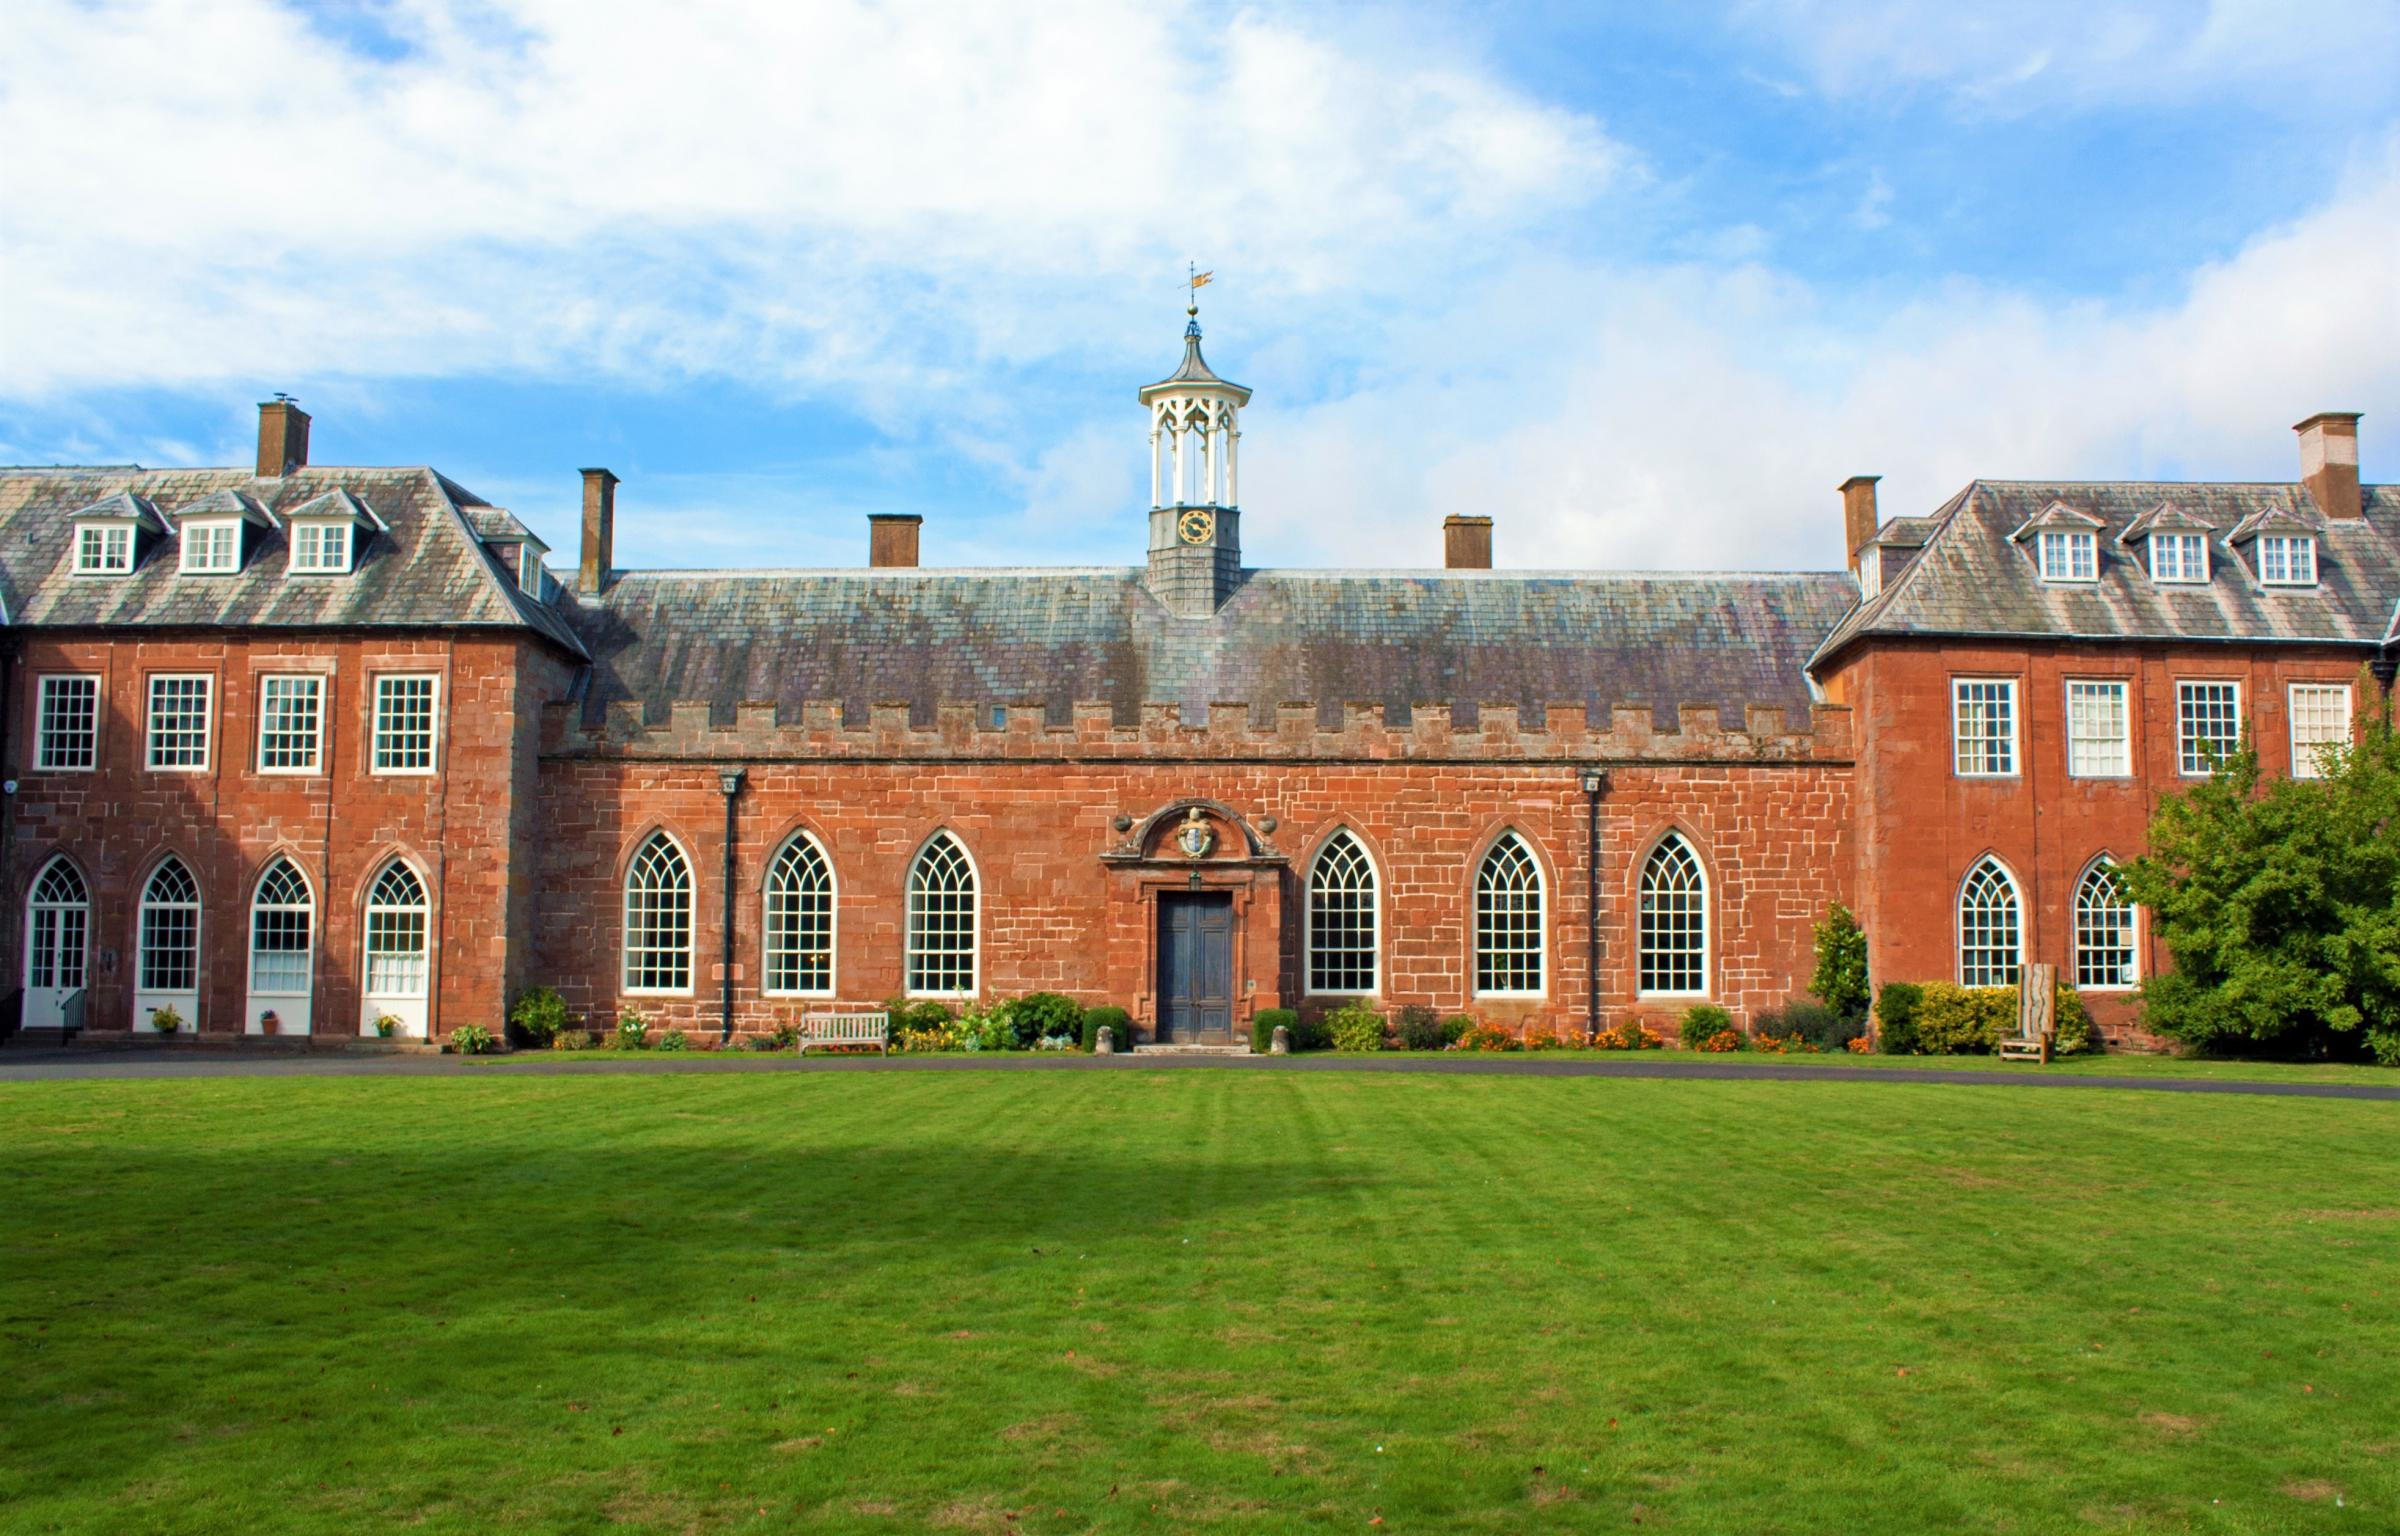 The award-winning Hartlebury Castle